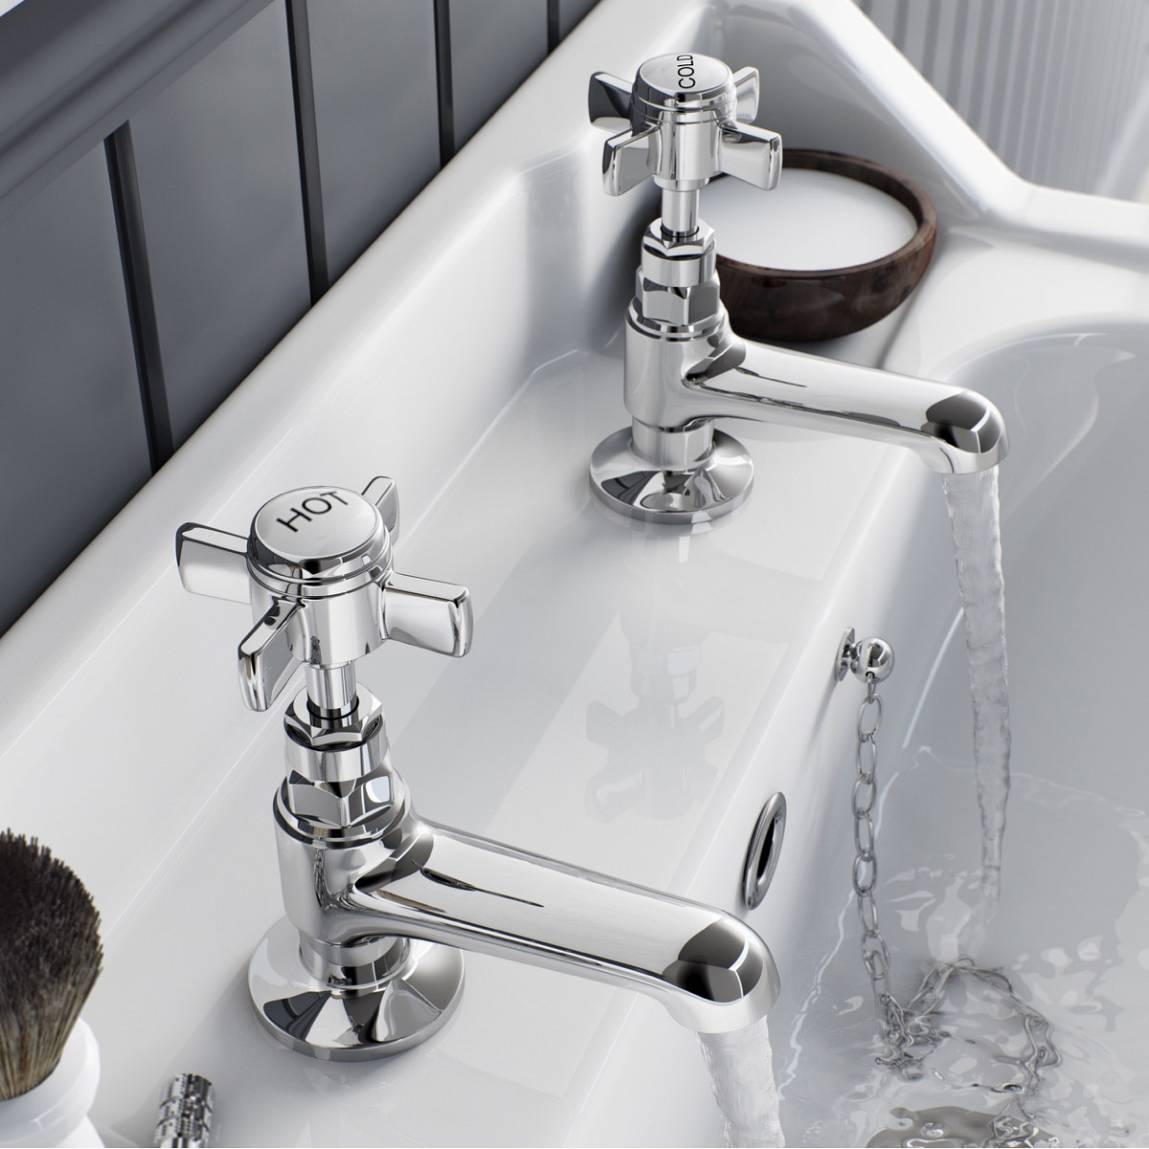 Traditional hot and cold pillar taps